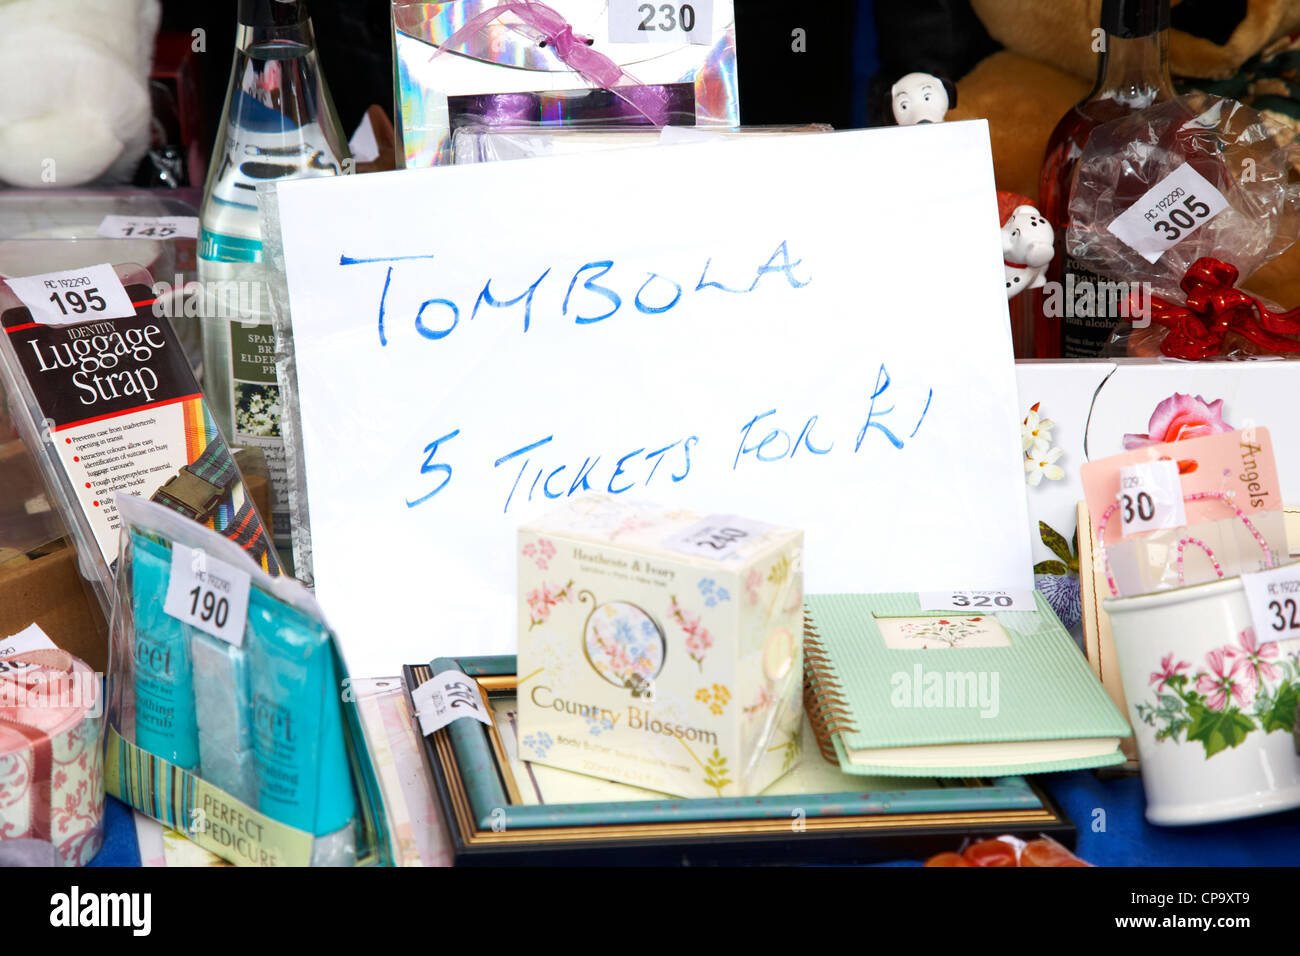 sign for a tombola raffle tickets on a charity shop stall in the stock photo sign for a tombola raffle tickets on a charity shop stall in the uk